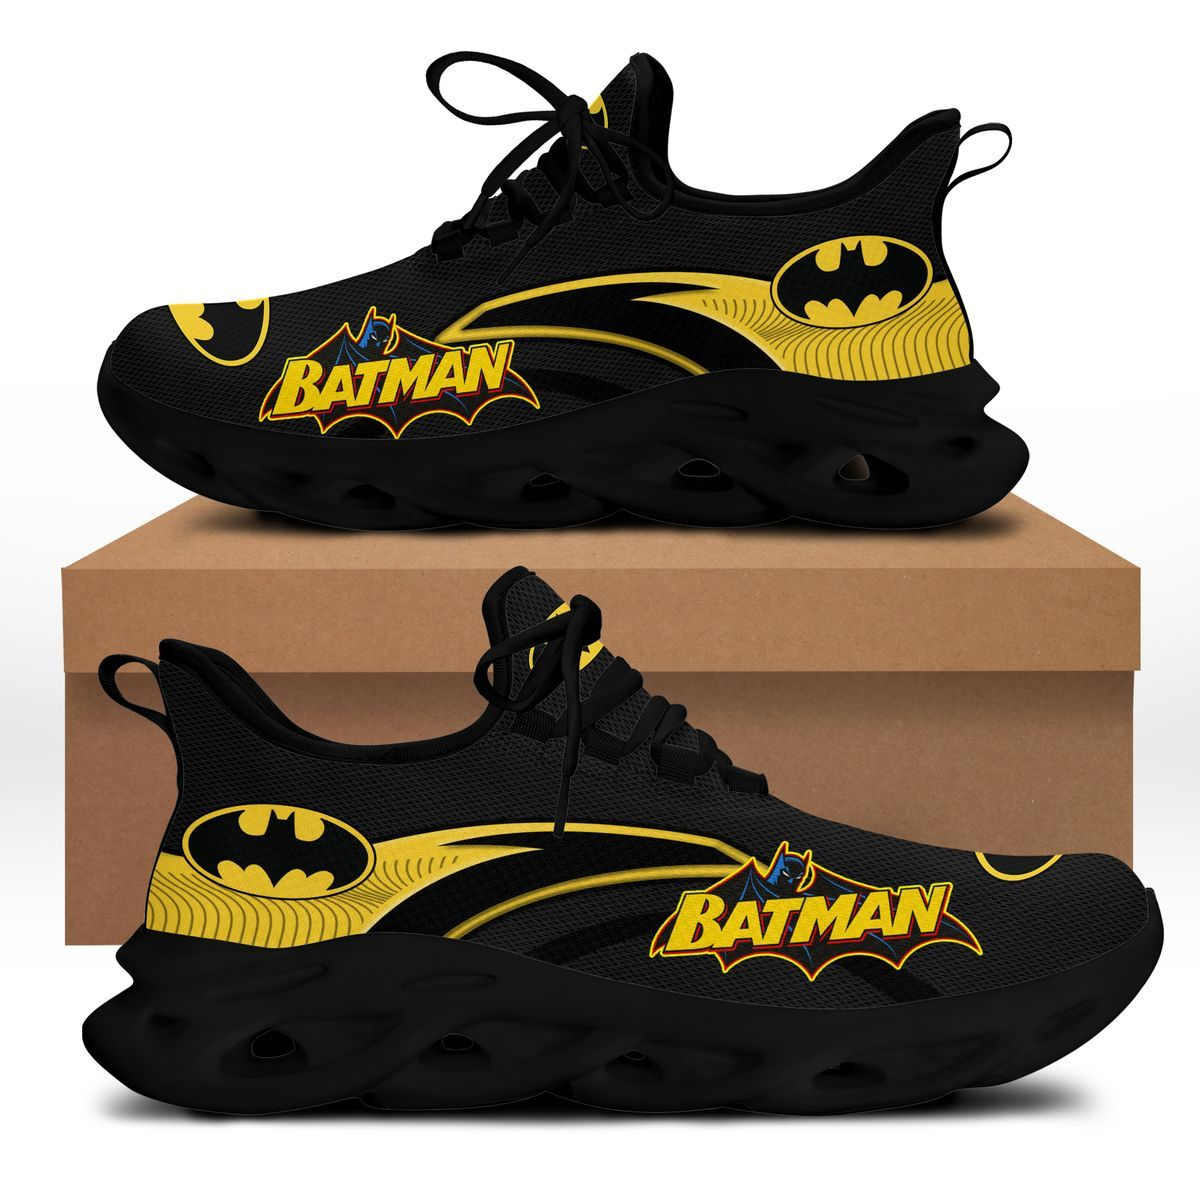 Batman Clunky Max soul shoes - LIMITED EDITION